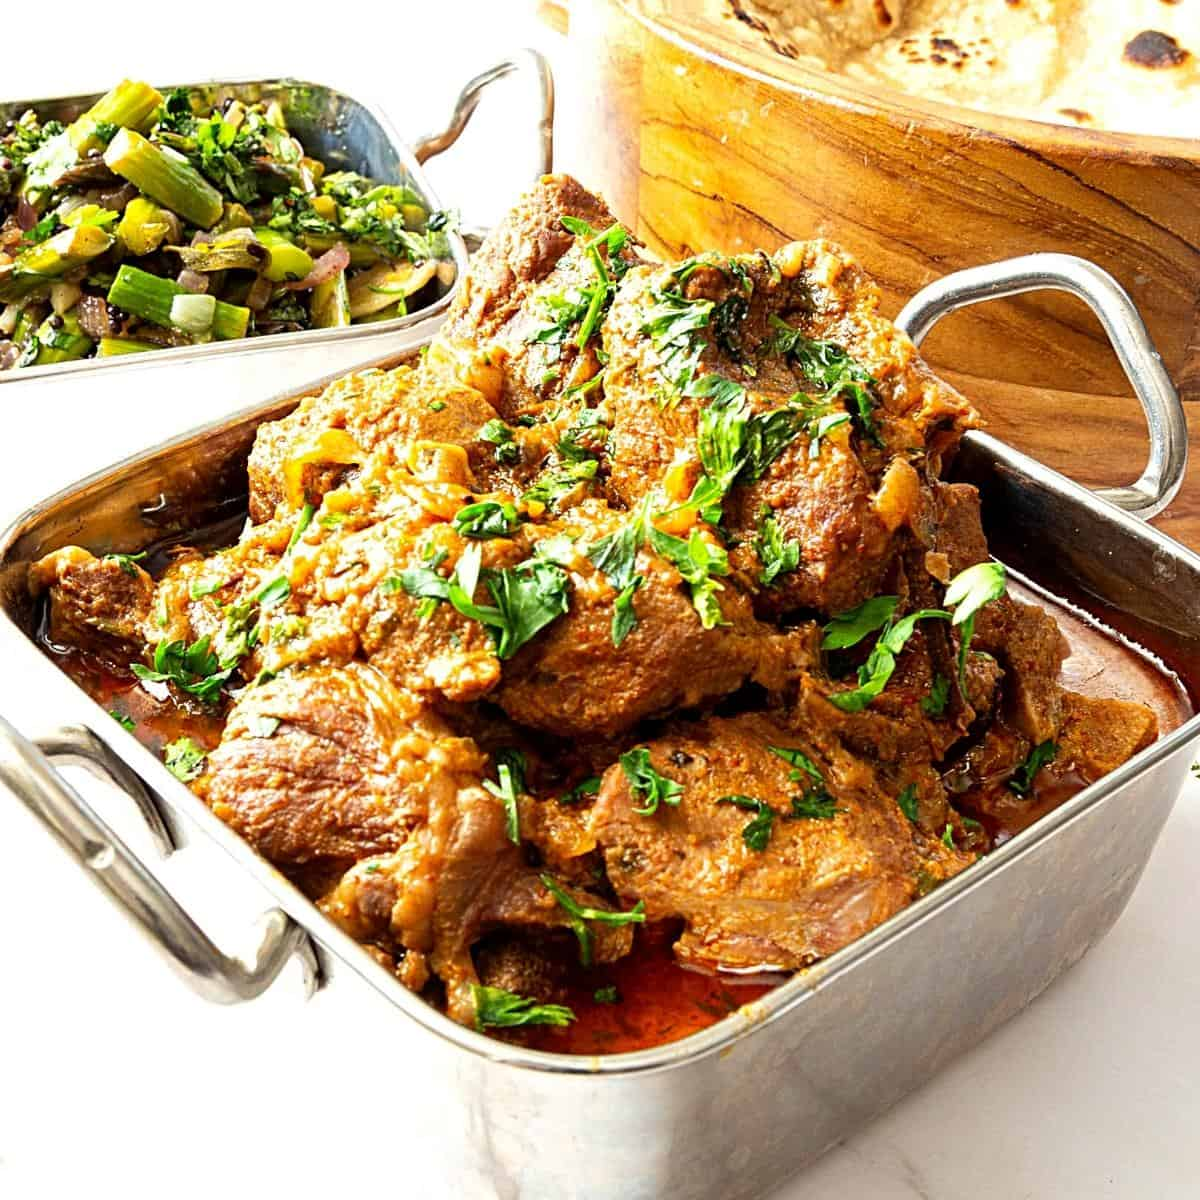 An Indian dish with lamb curry.